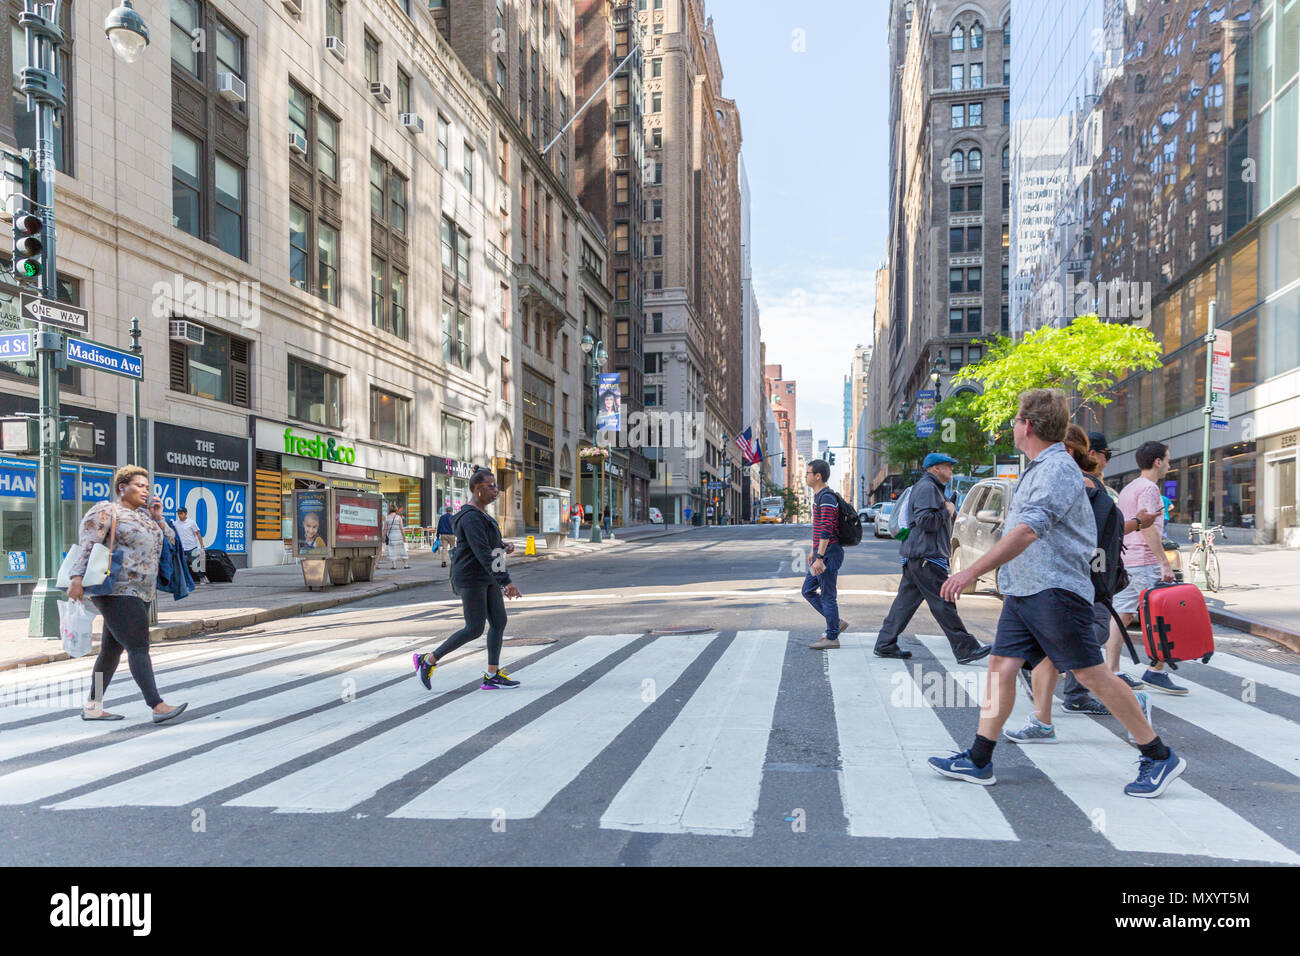 New York - June 2, 2018: A view down a busy avenue street, People walk on busy streets - Stock Image